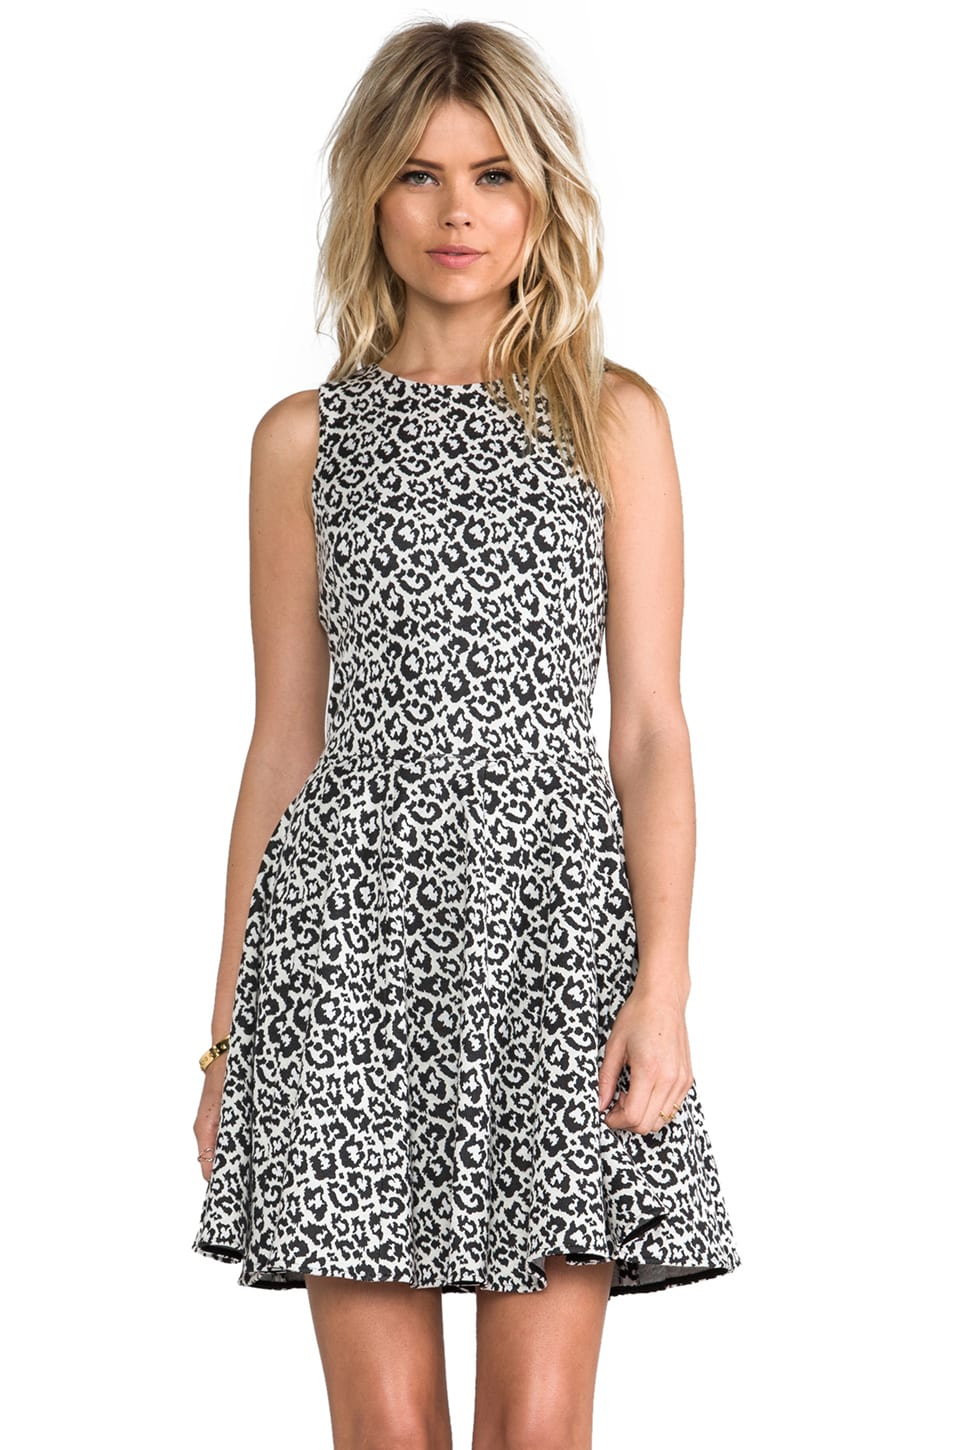 Tibi Leopard Knit Dress in Black & White Multi